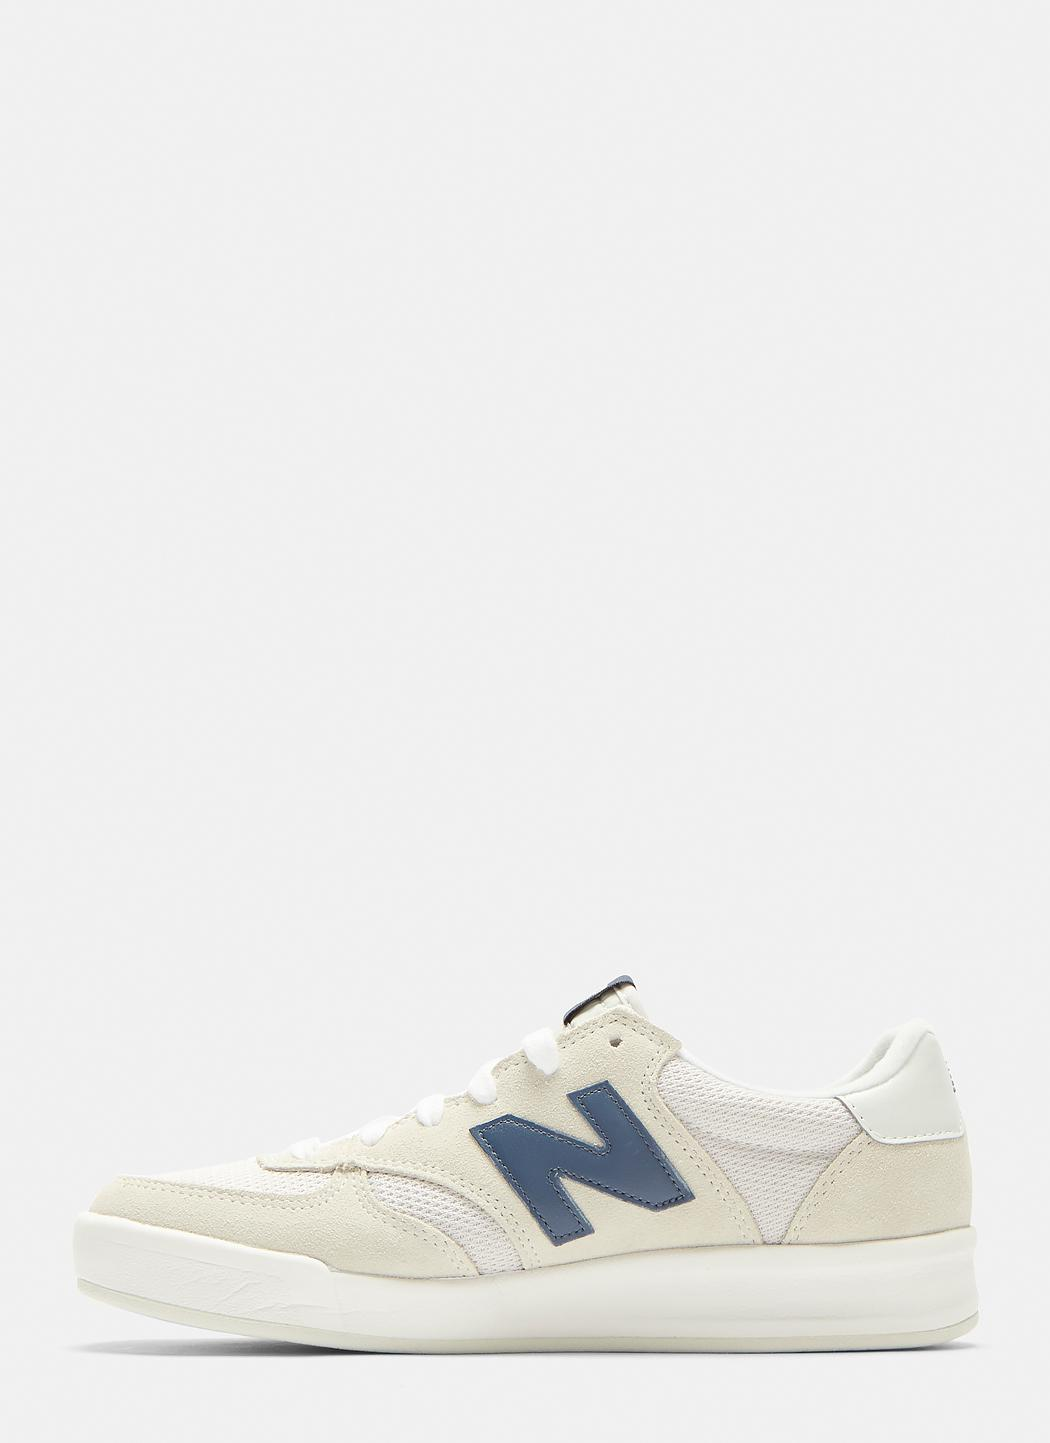 New Balance 300 Suede and Nylon Court Sneakers b8qz71